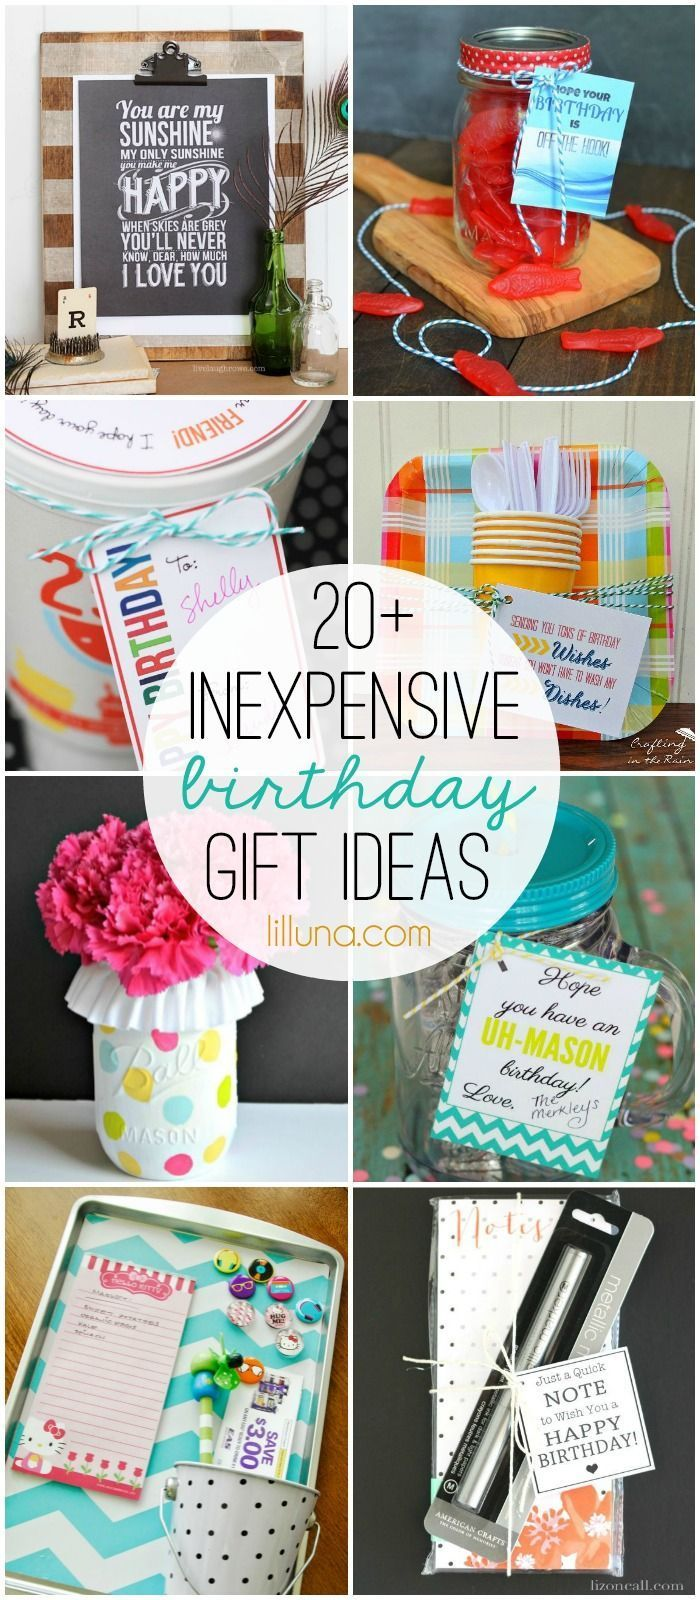 20 Inexpensive Birthday Gift Ideas Must Check Out All These Good For Easy And Gifts On